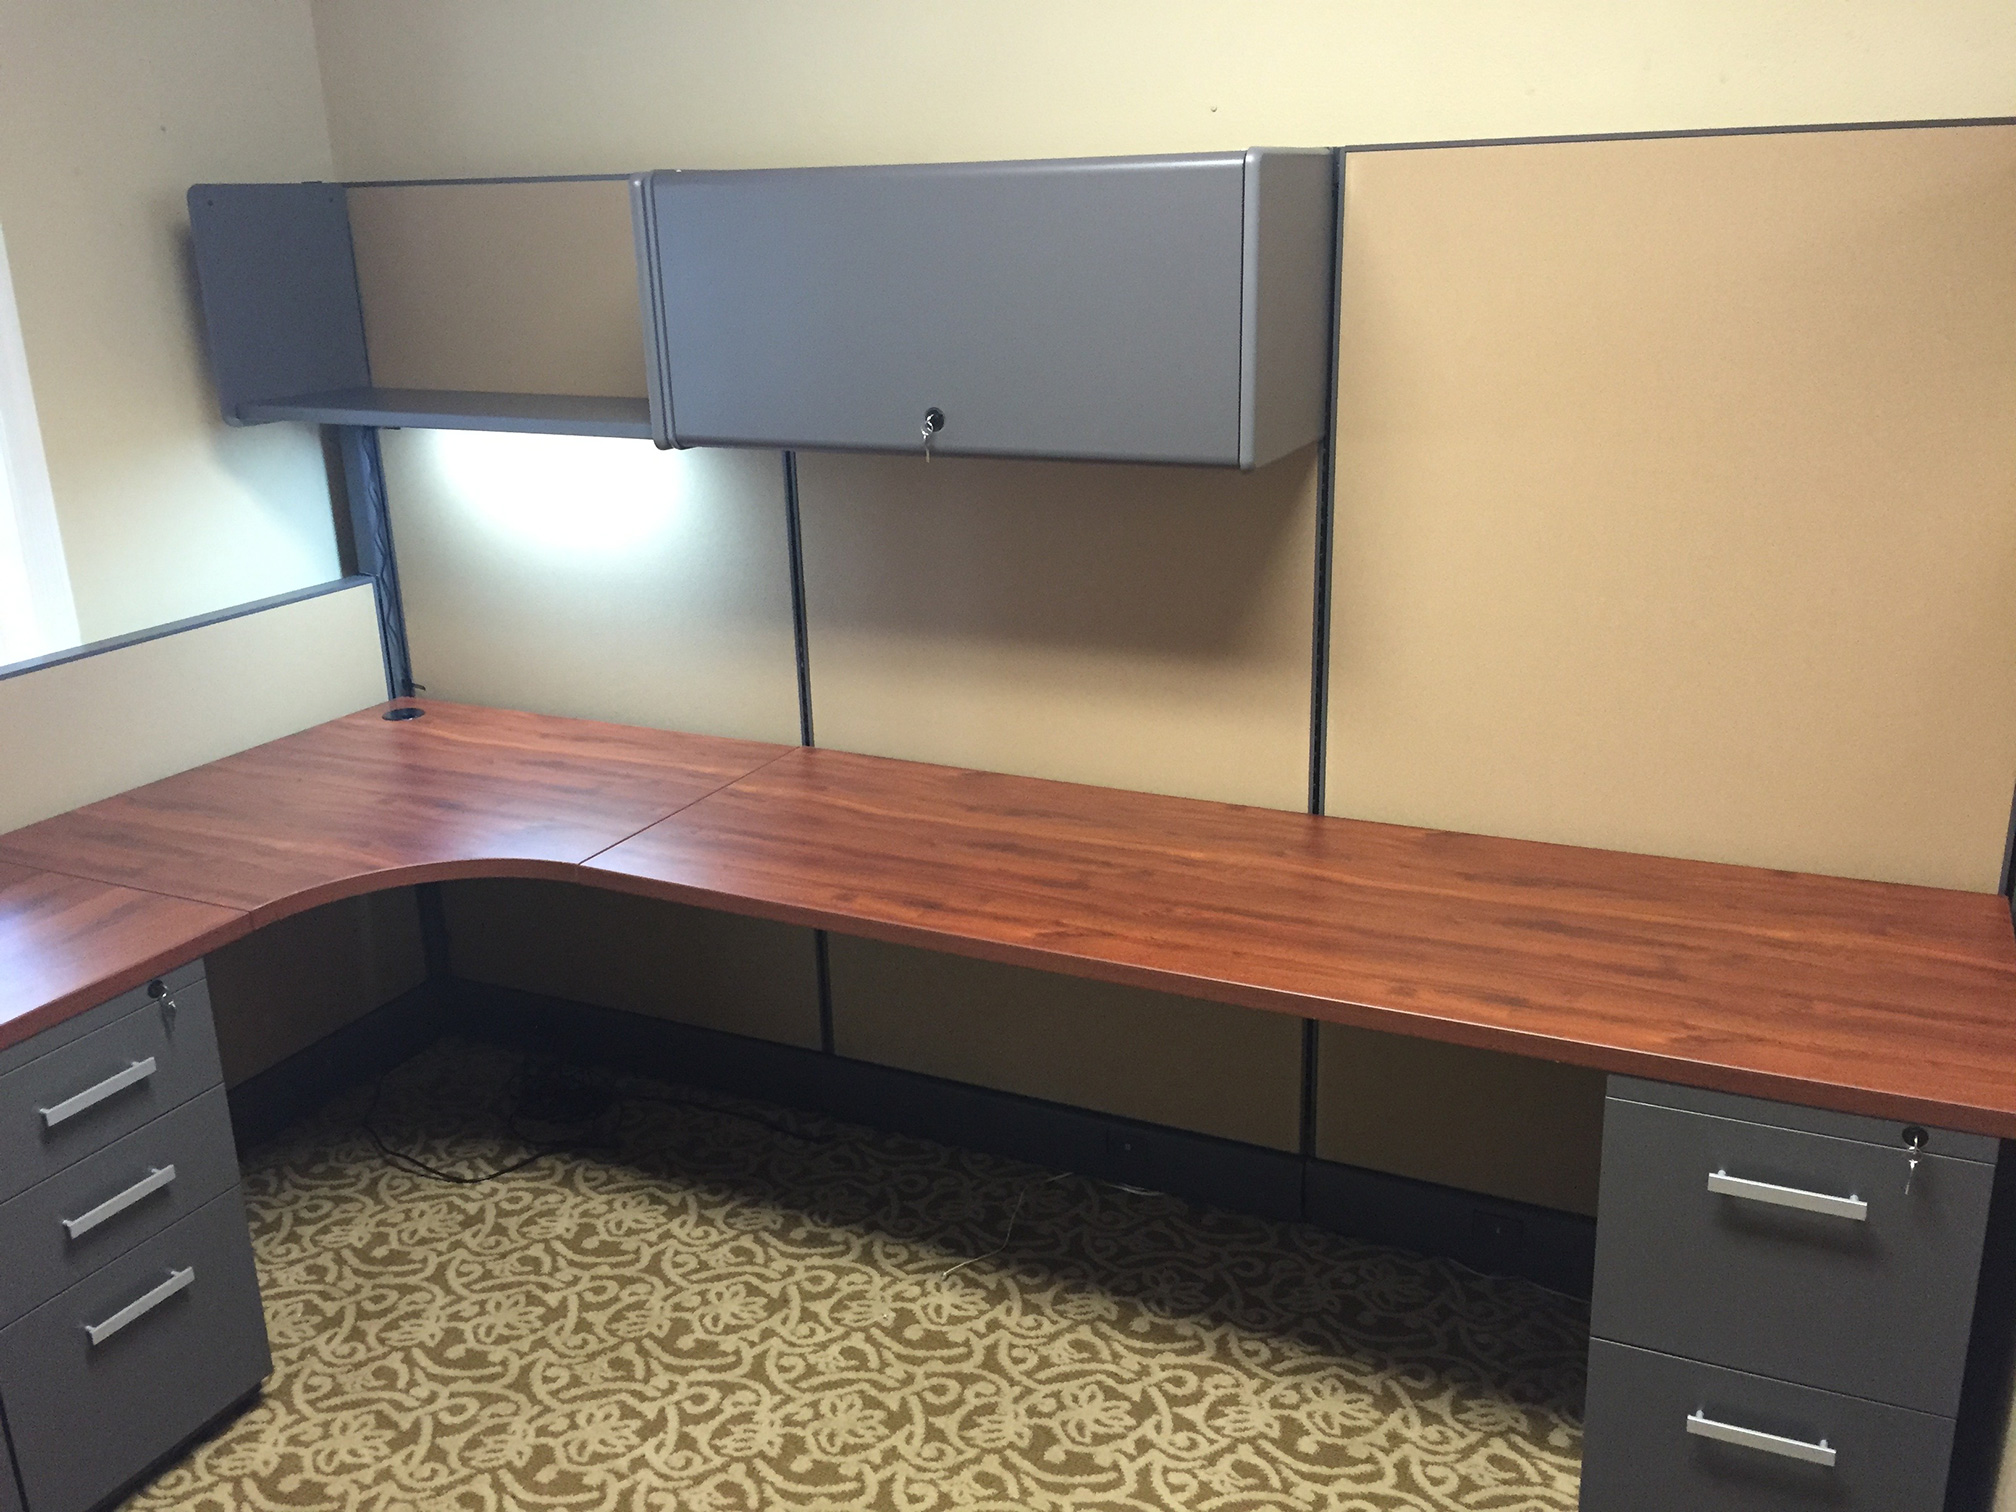 new-workstations-bradenton-manasota-office-supplies-llc.jpg